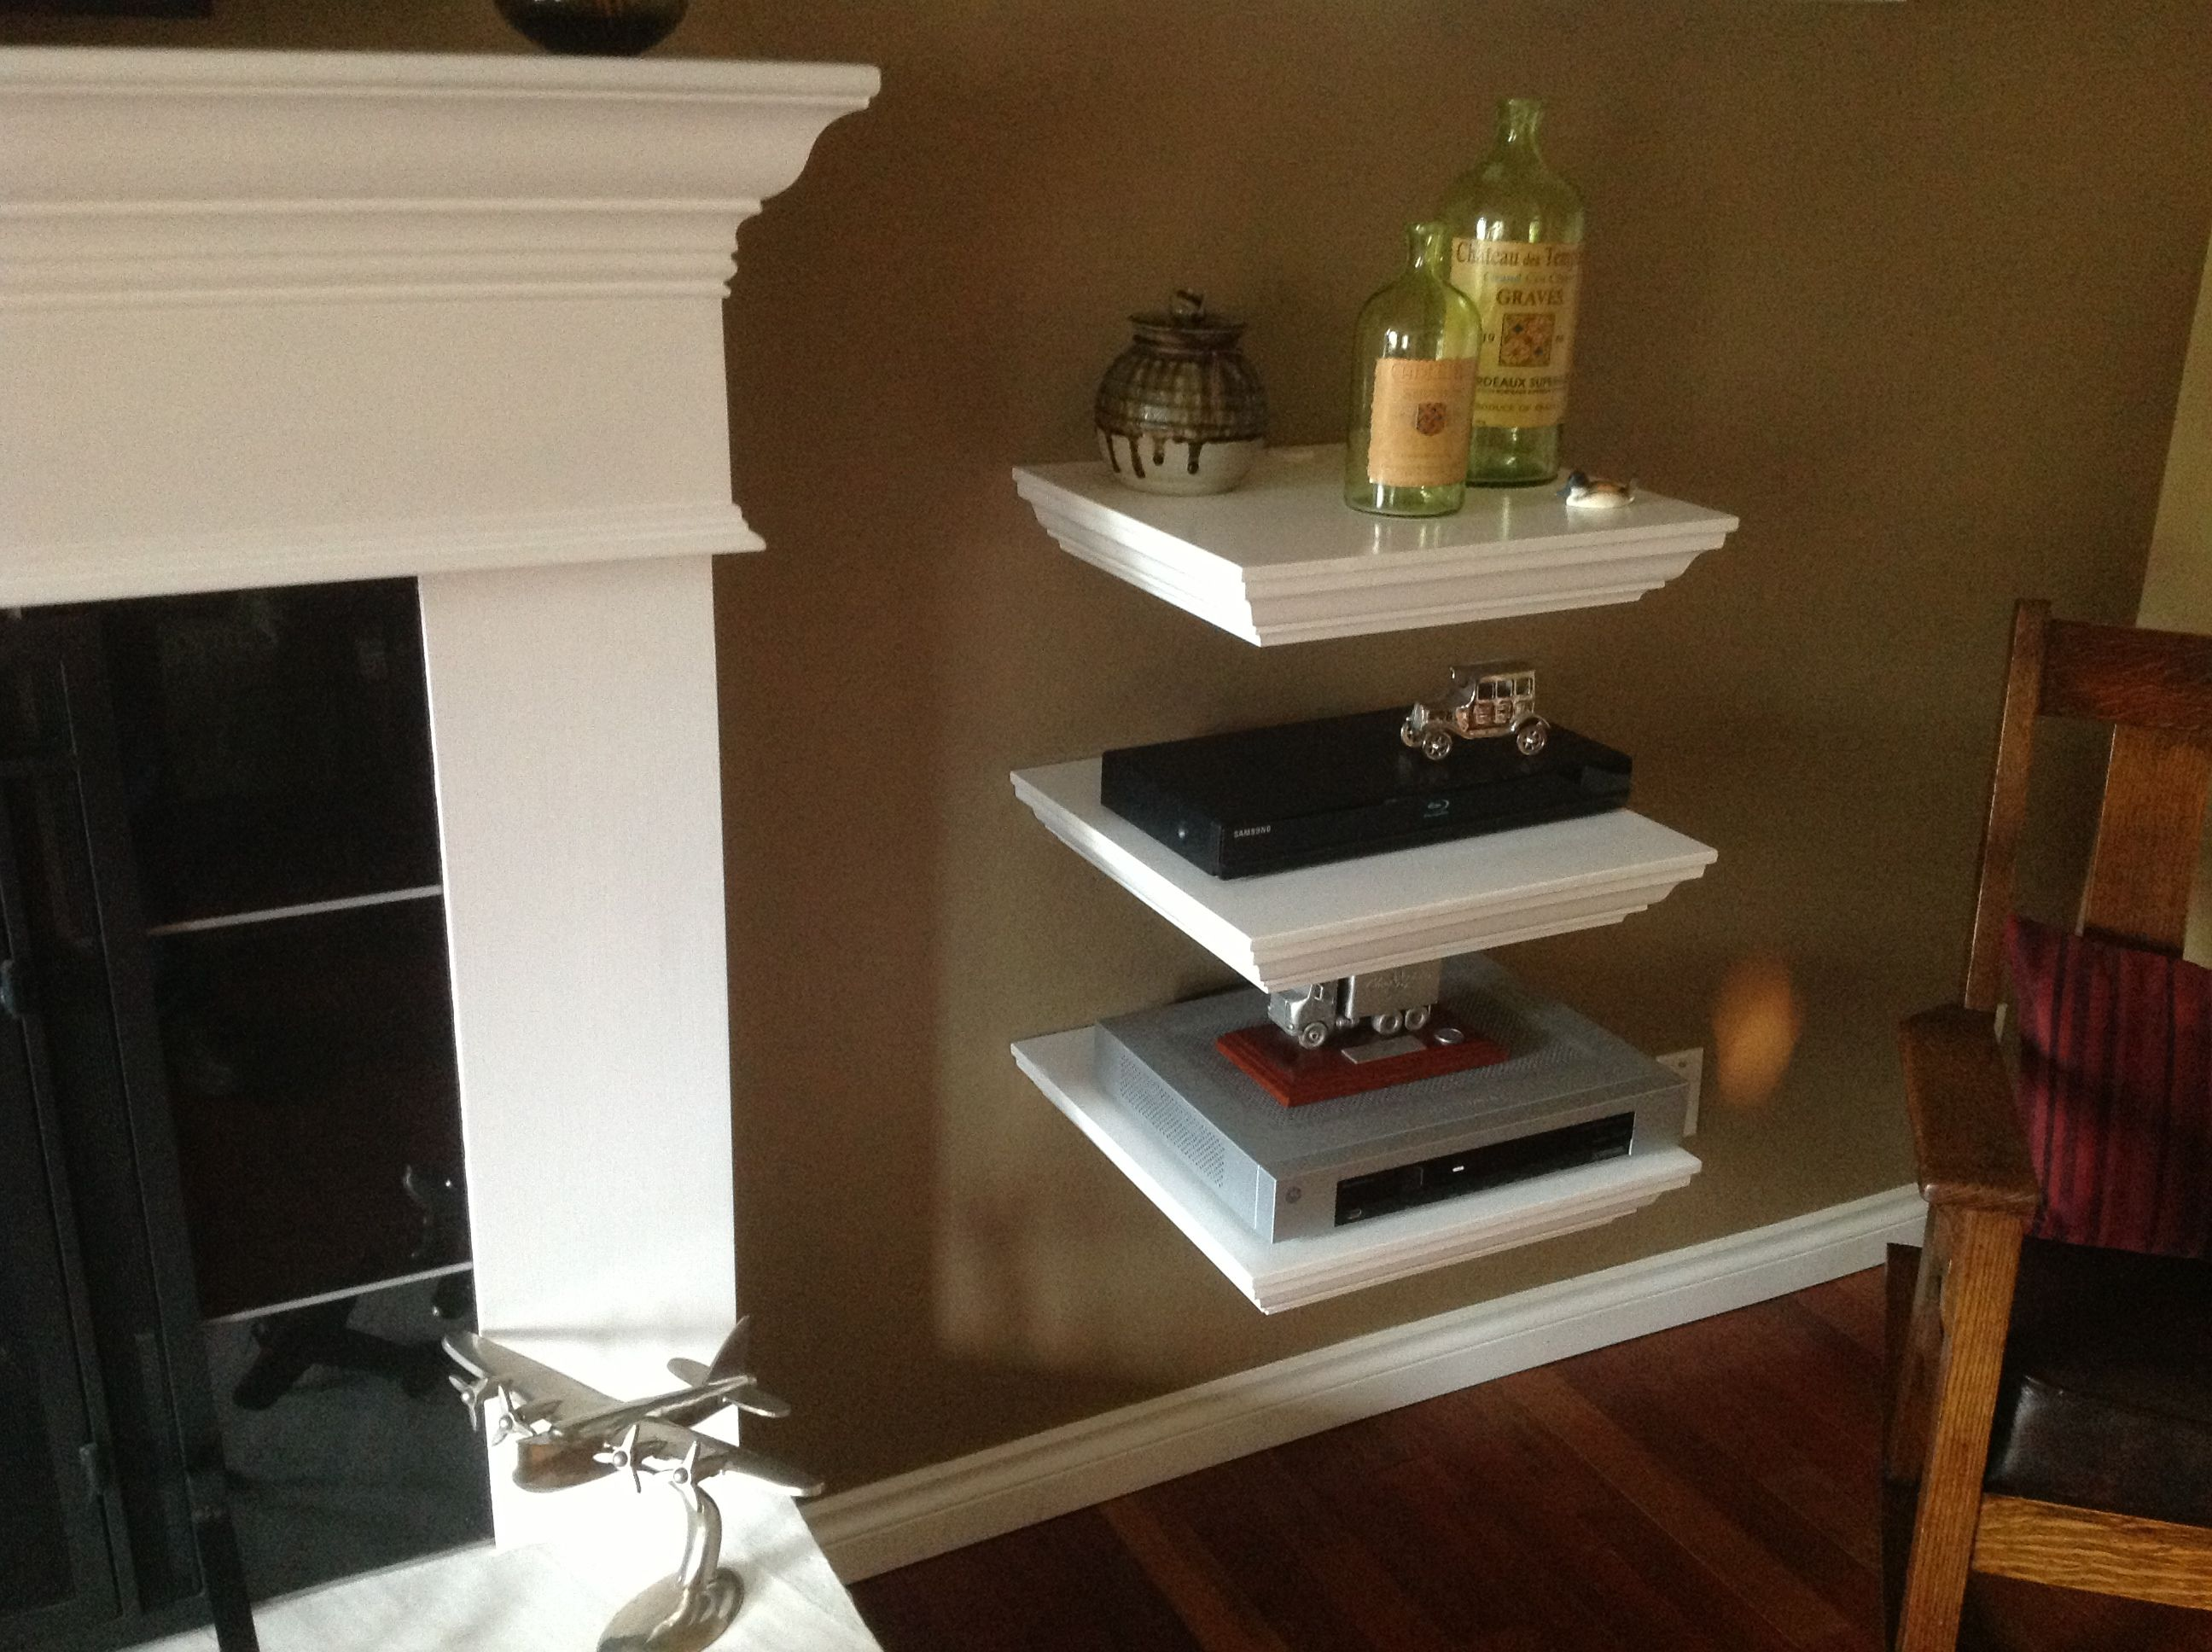 Home Entertainment Shelf System I Built All Cables Go Down Into The